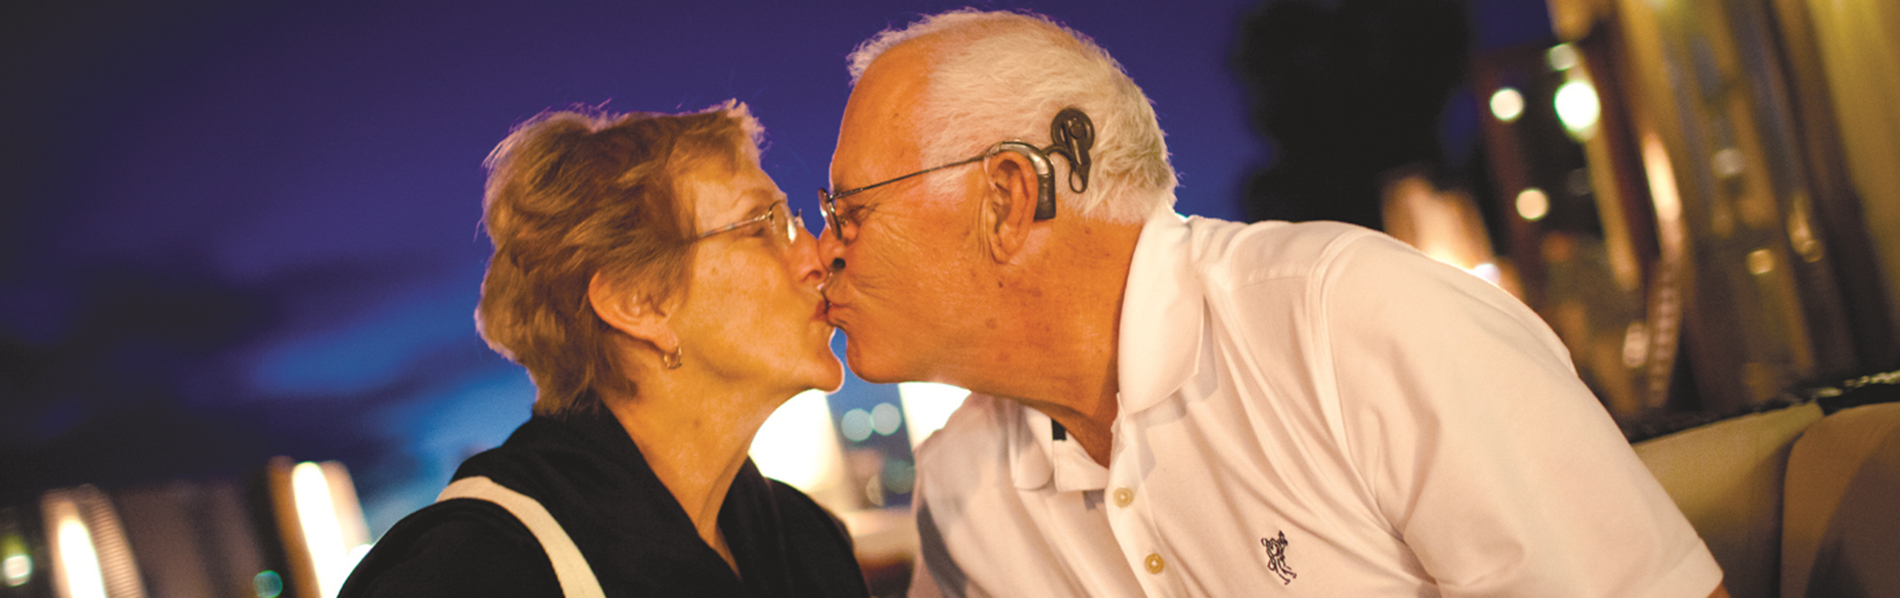 Man wearing a hearing aid kissing his wife.